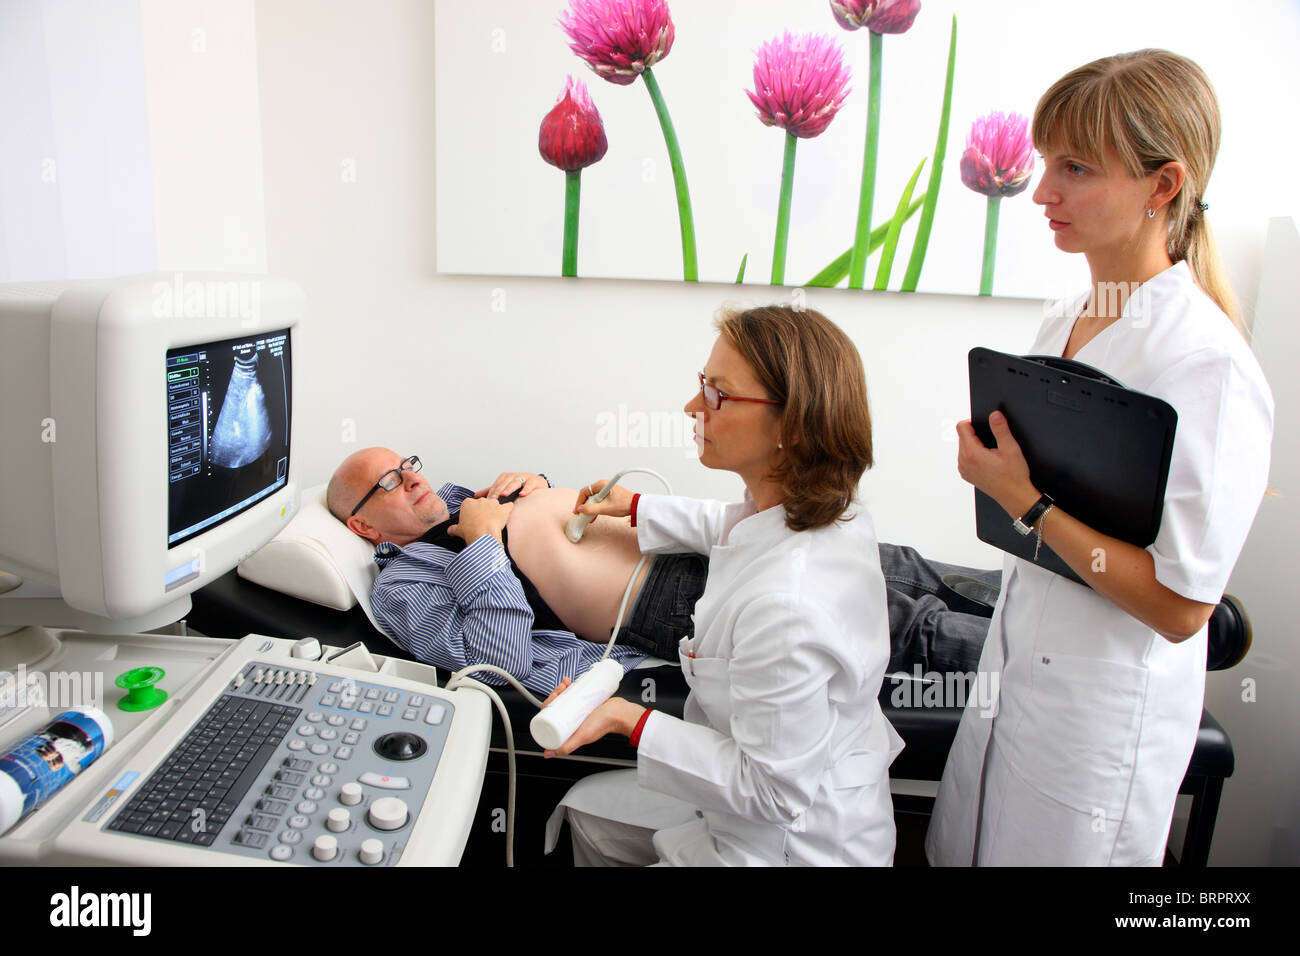 Ultrasound scanning of a male patient, medical practice in a doctors surgery. Scanning of internal organs. - Stock Image